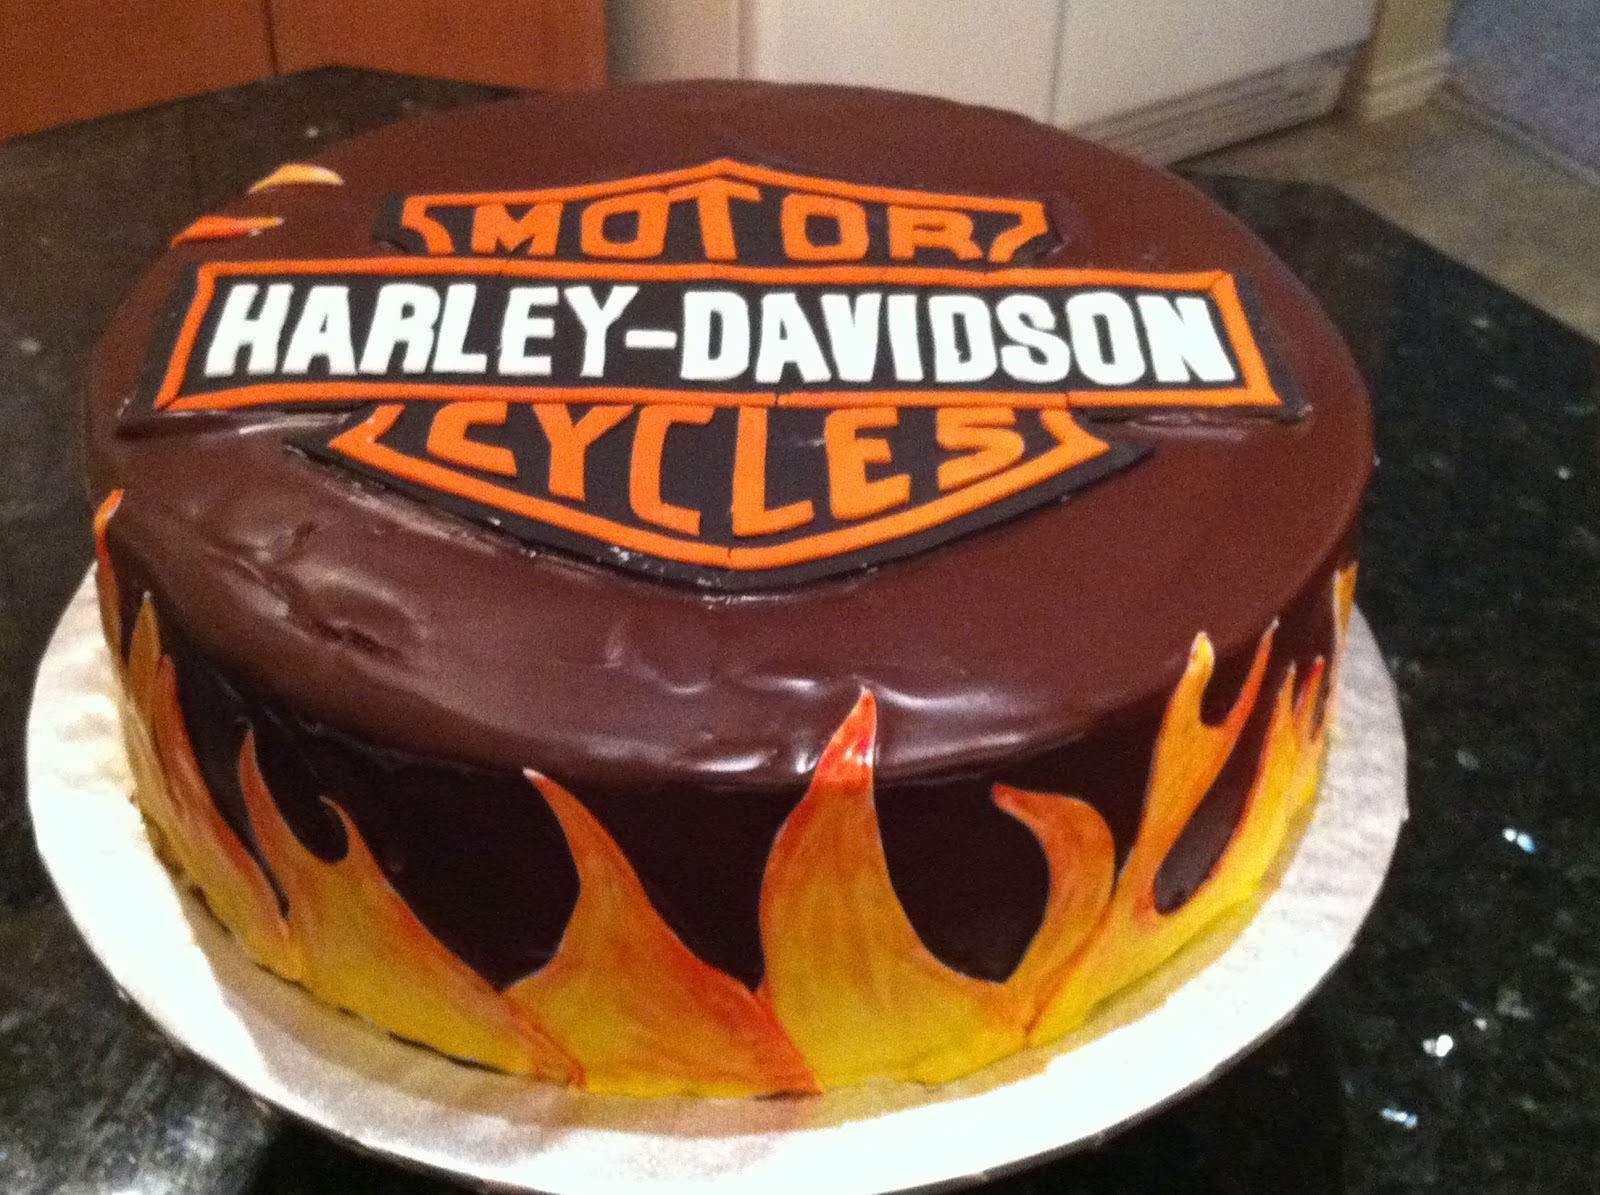 My Little Pony Home Decor Harley Davidson Cakes Quotes